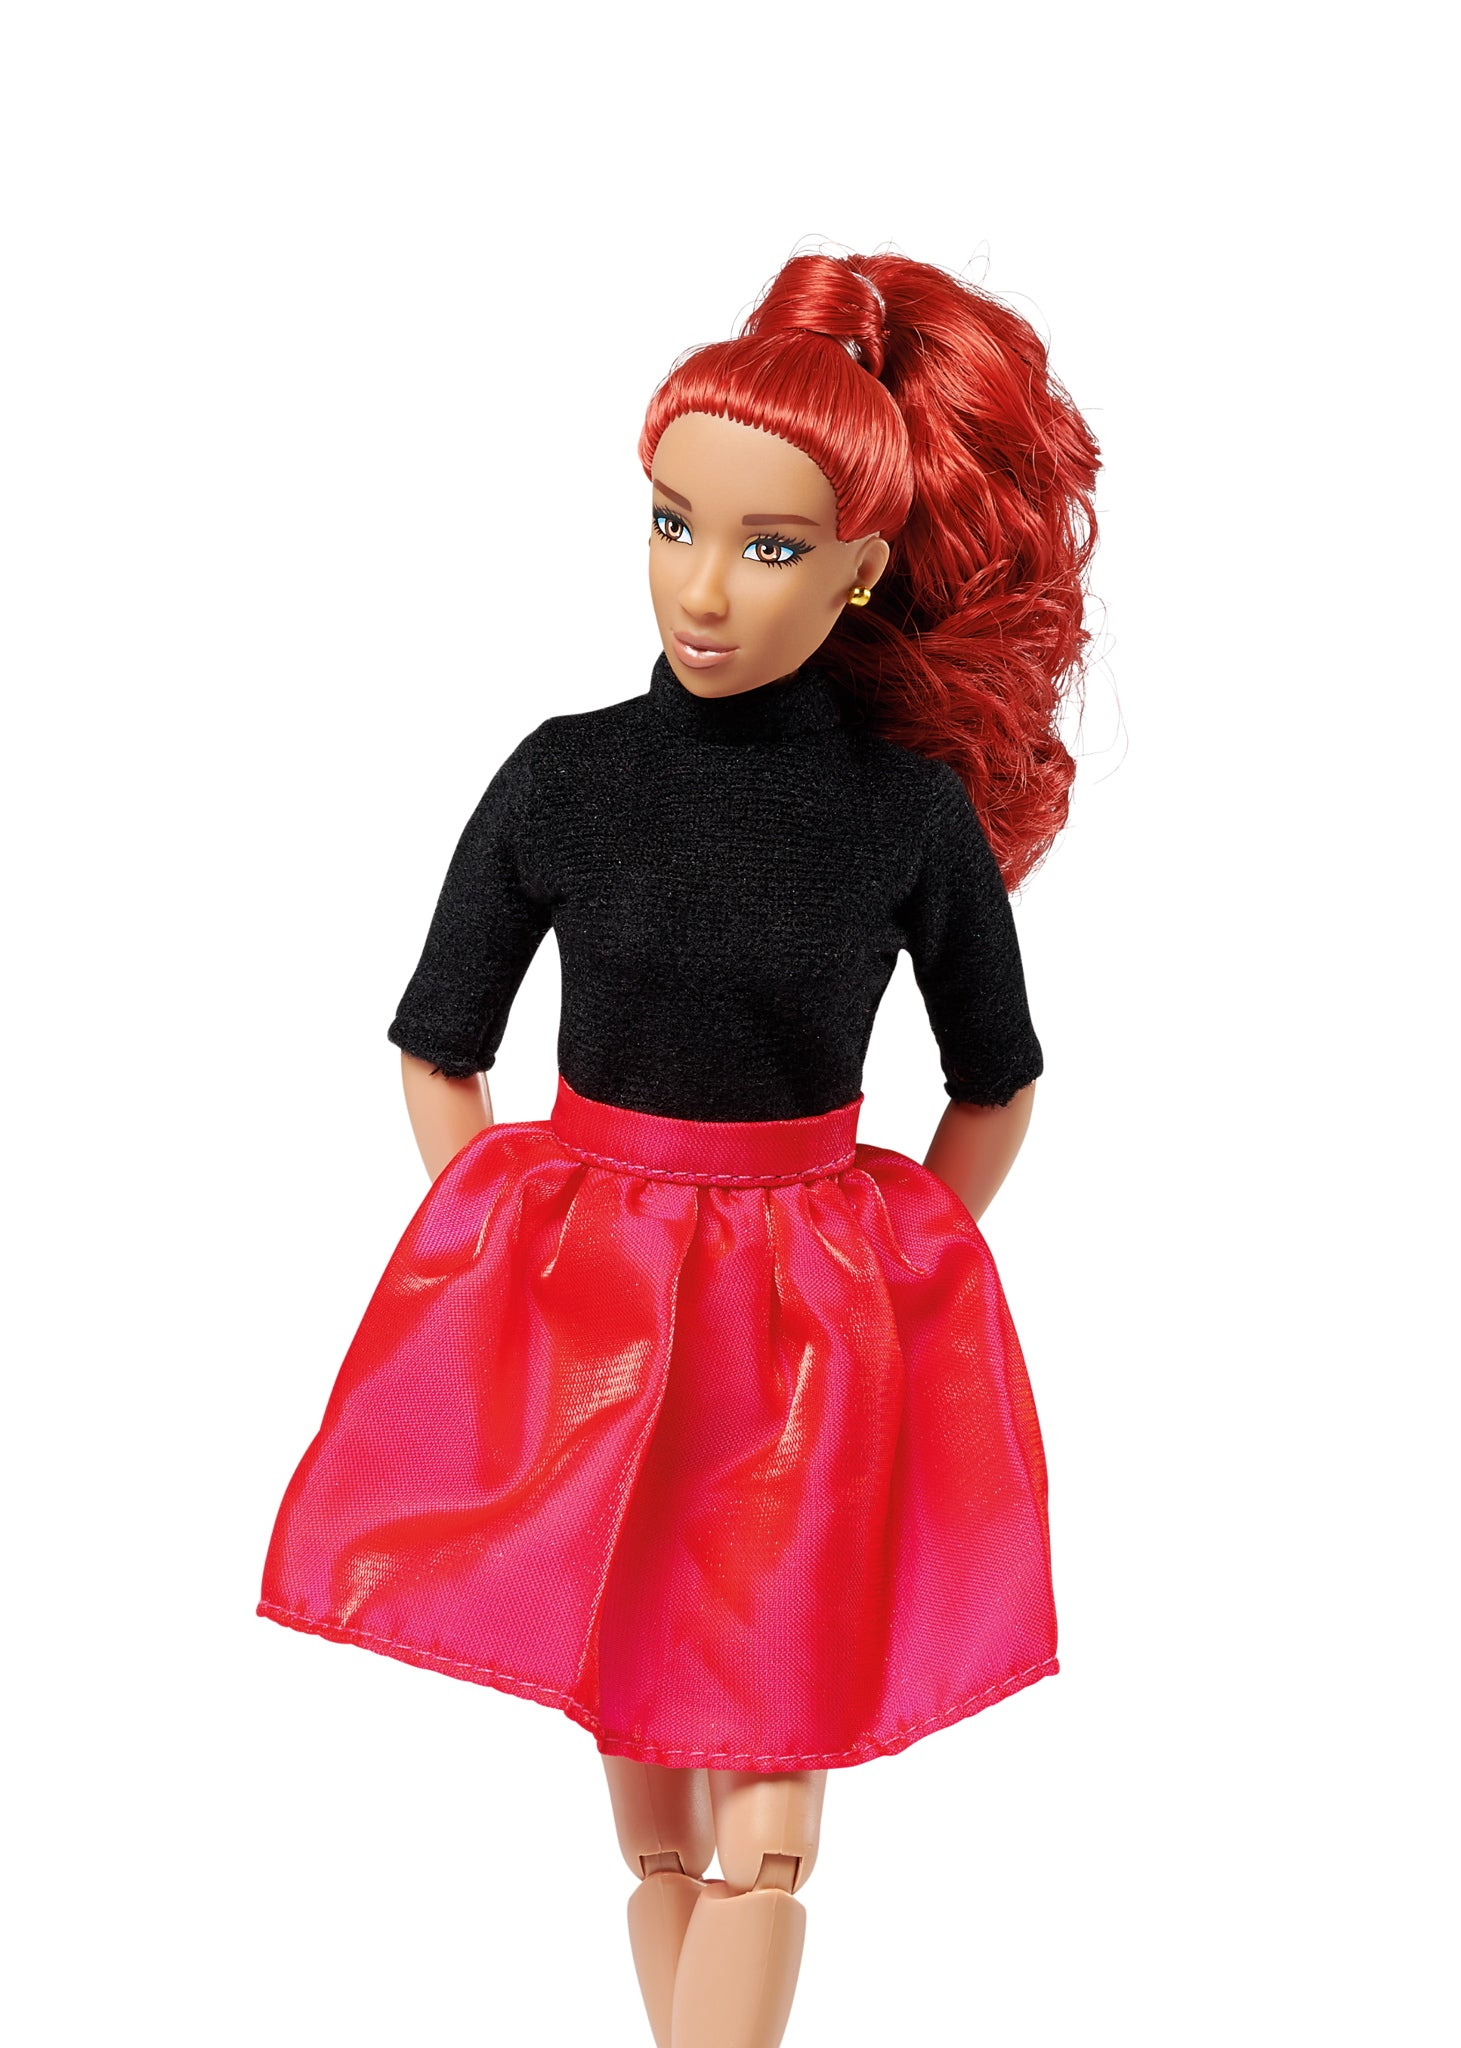 red hair freash doll wearing black shirt and red/pink skirt